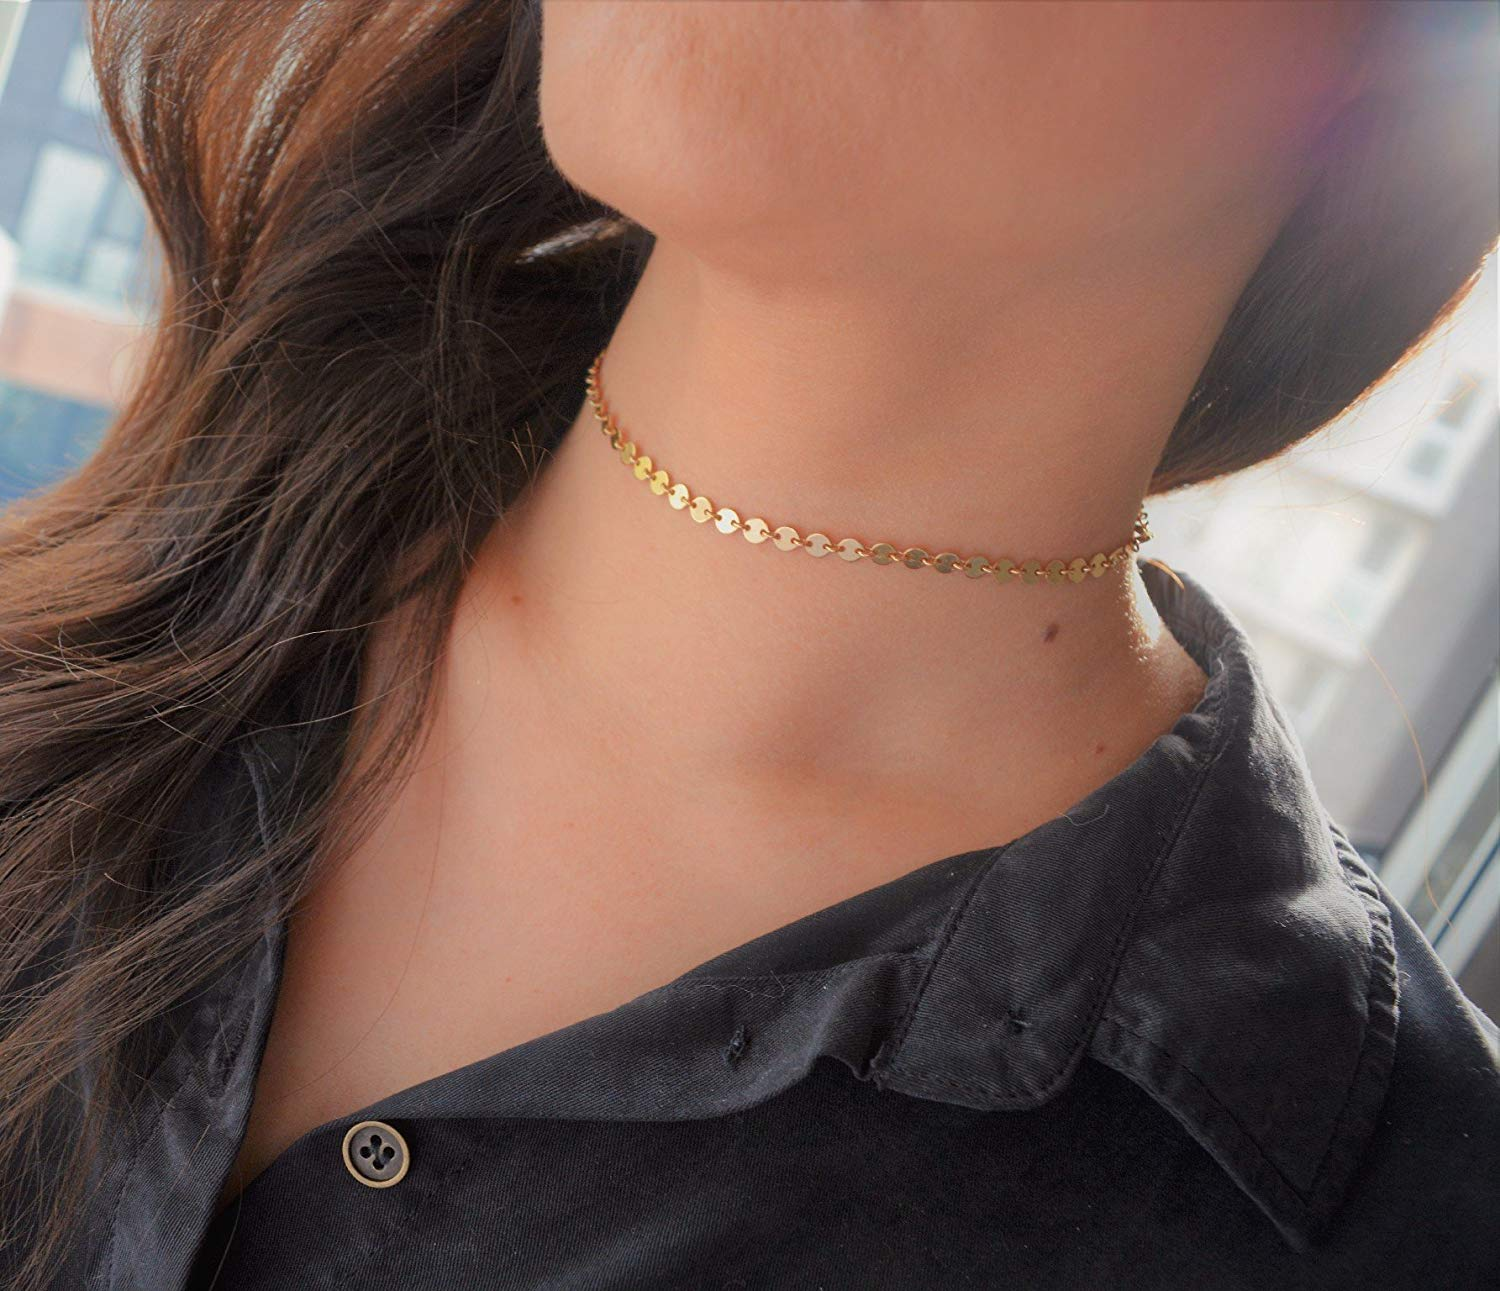 Choker necklace, rose gold choker necklace, rose gold choker chain, gold choker, silver choker, layering necklace, choker chain, choker